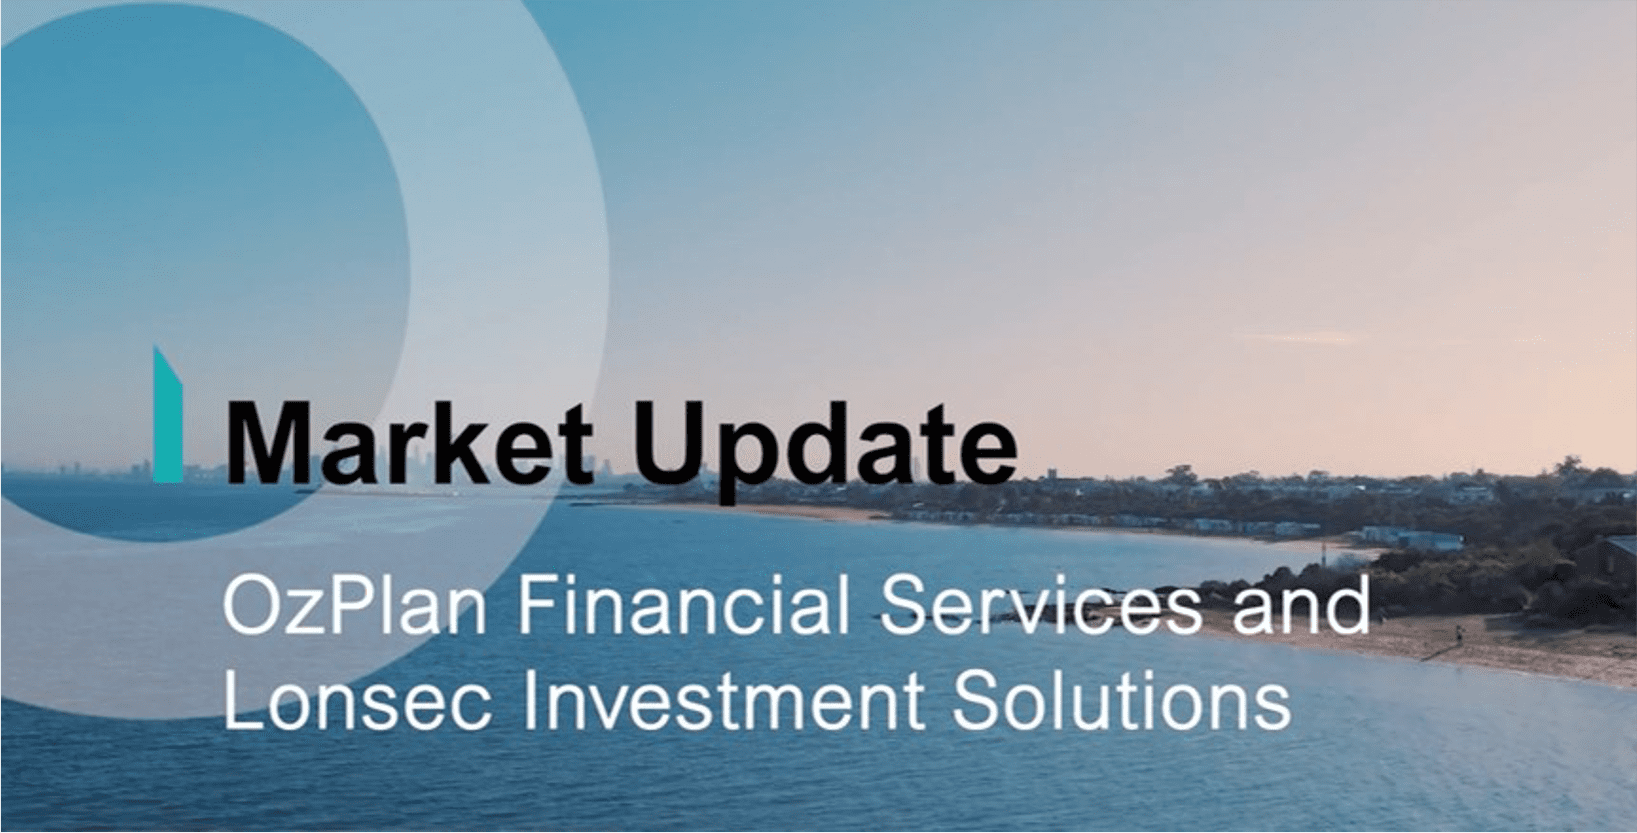 Market Update – OzPlan and Lonsec Investment Solutions